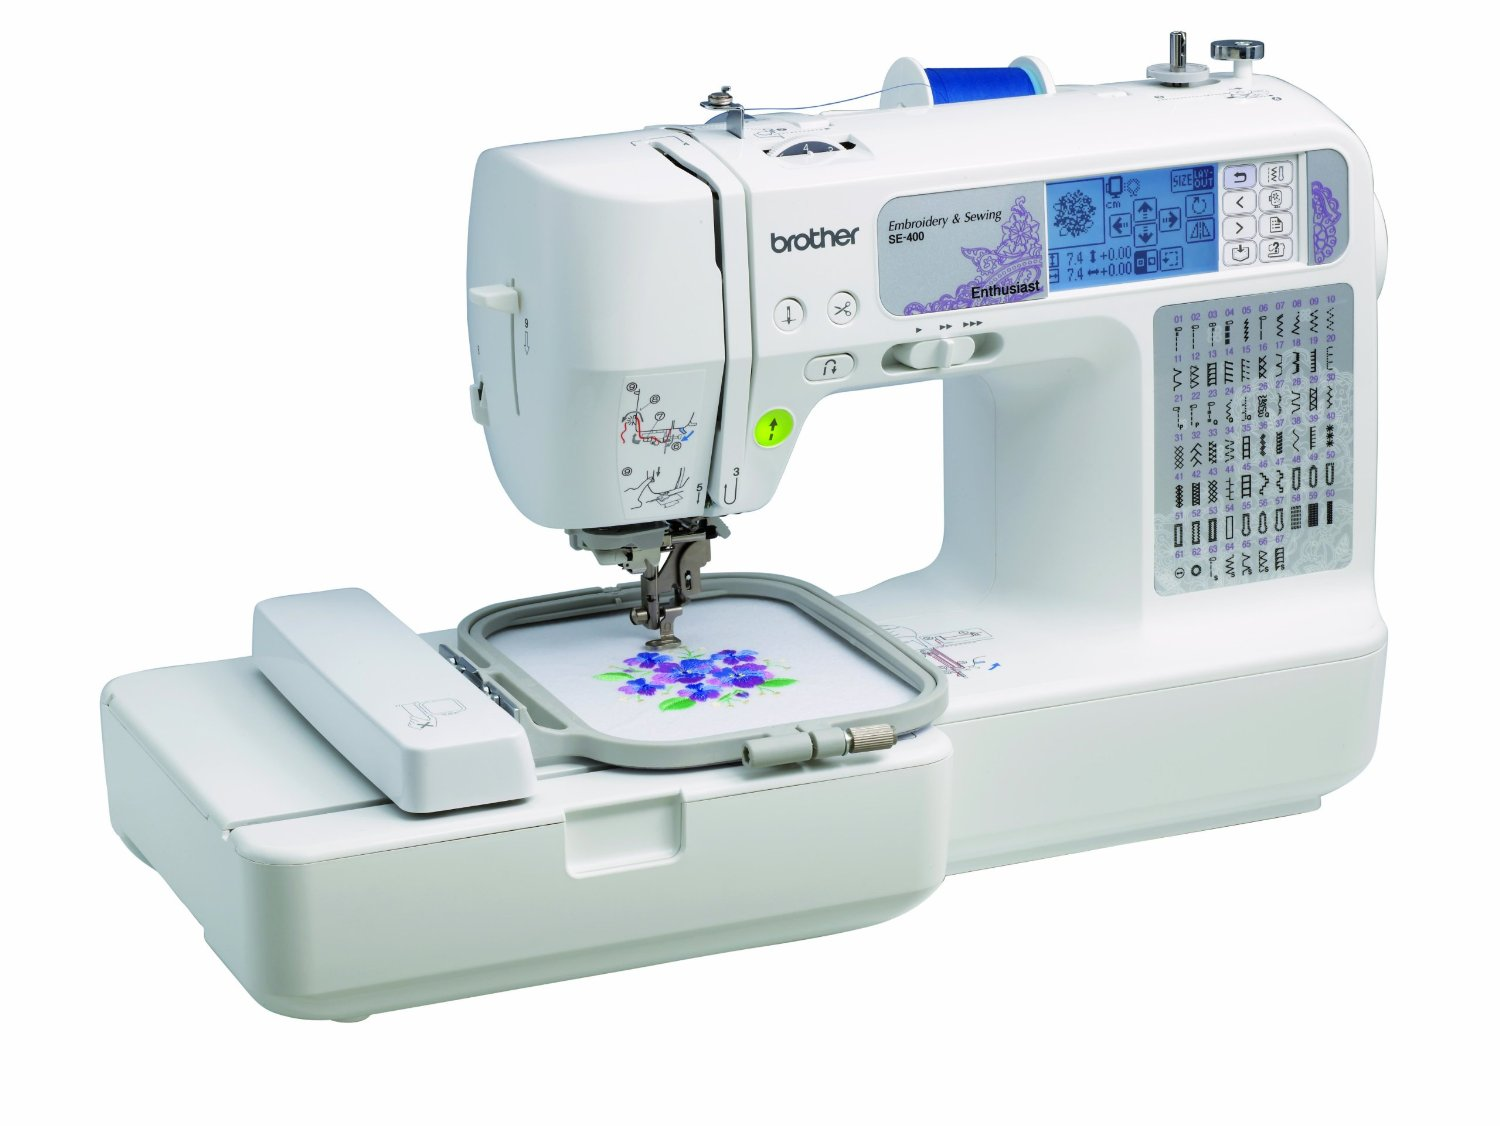 Brother SE400 Computerized Sewing and 4x4 Embroidery Machine - Reviews of Top 10 Sewing and Embroidery Machines and Supplies - Be Your Own Designer